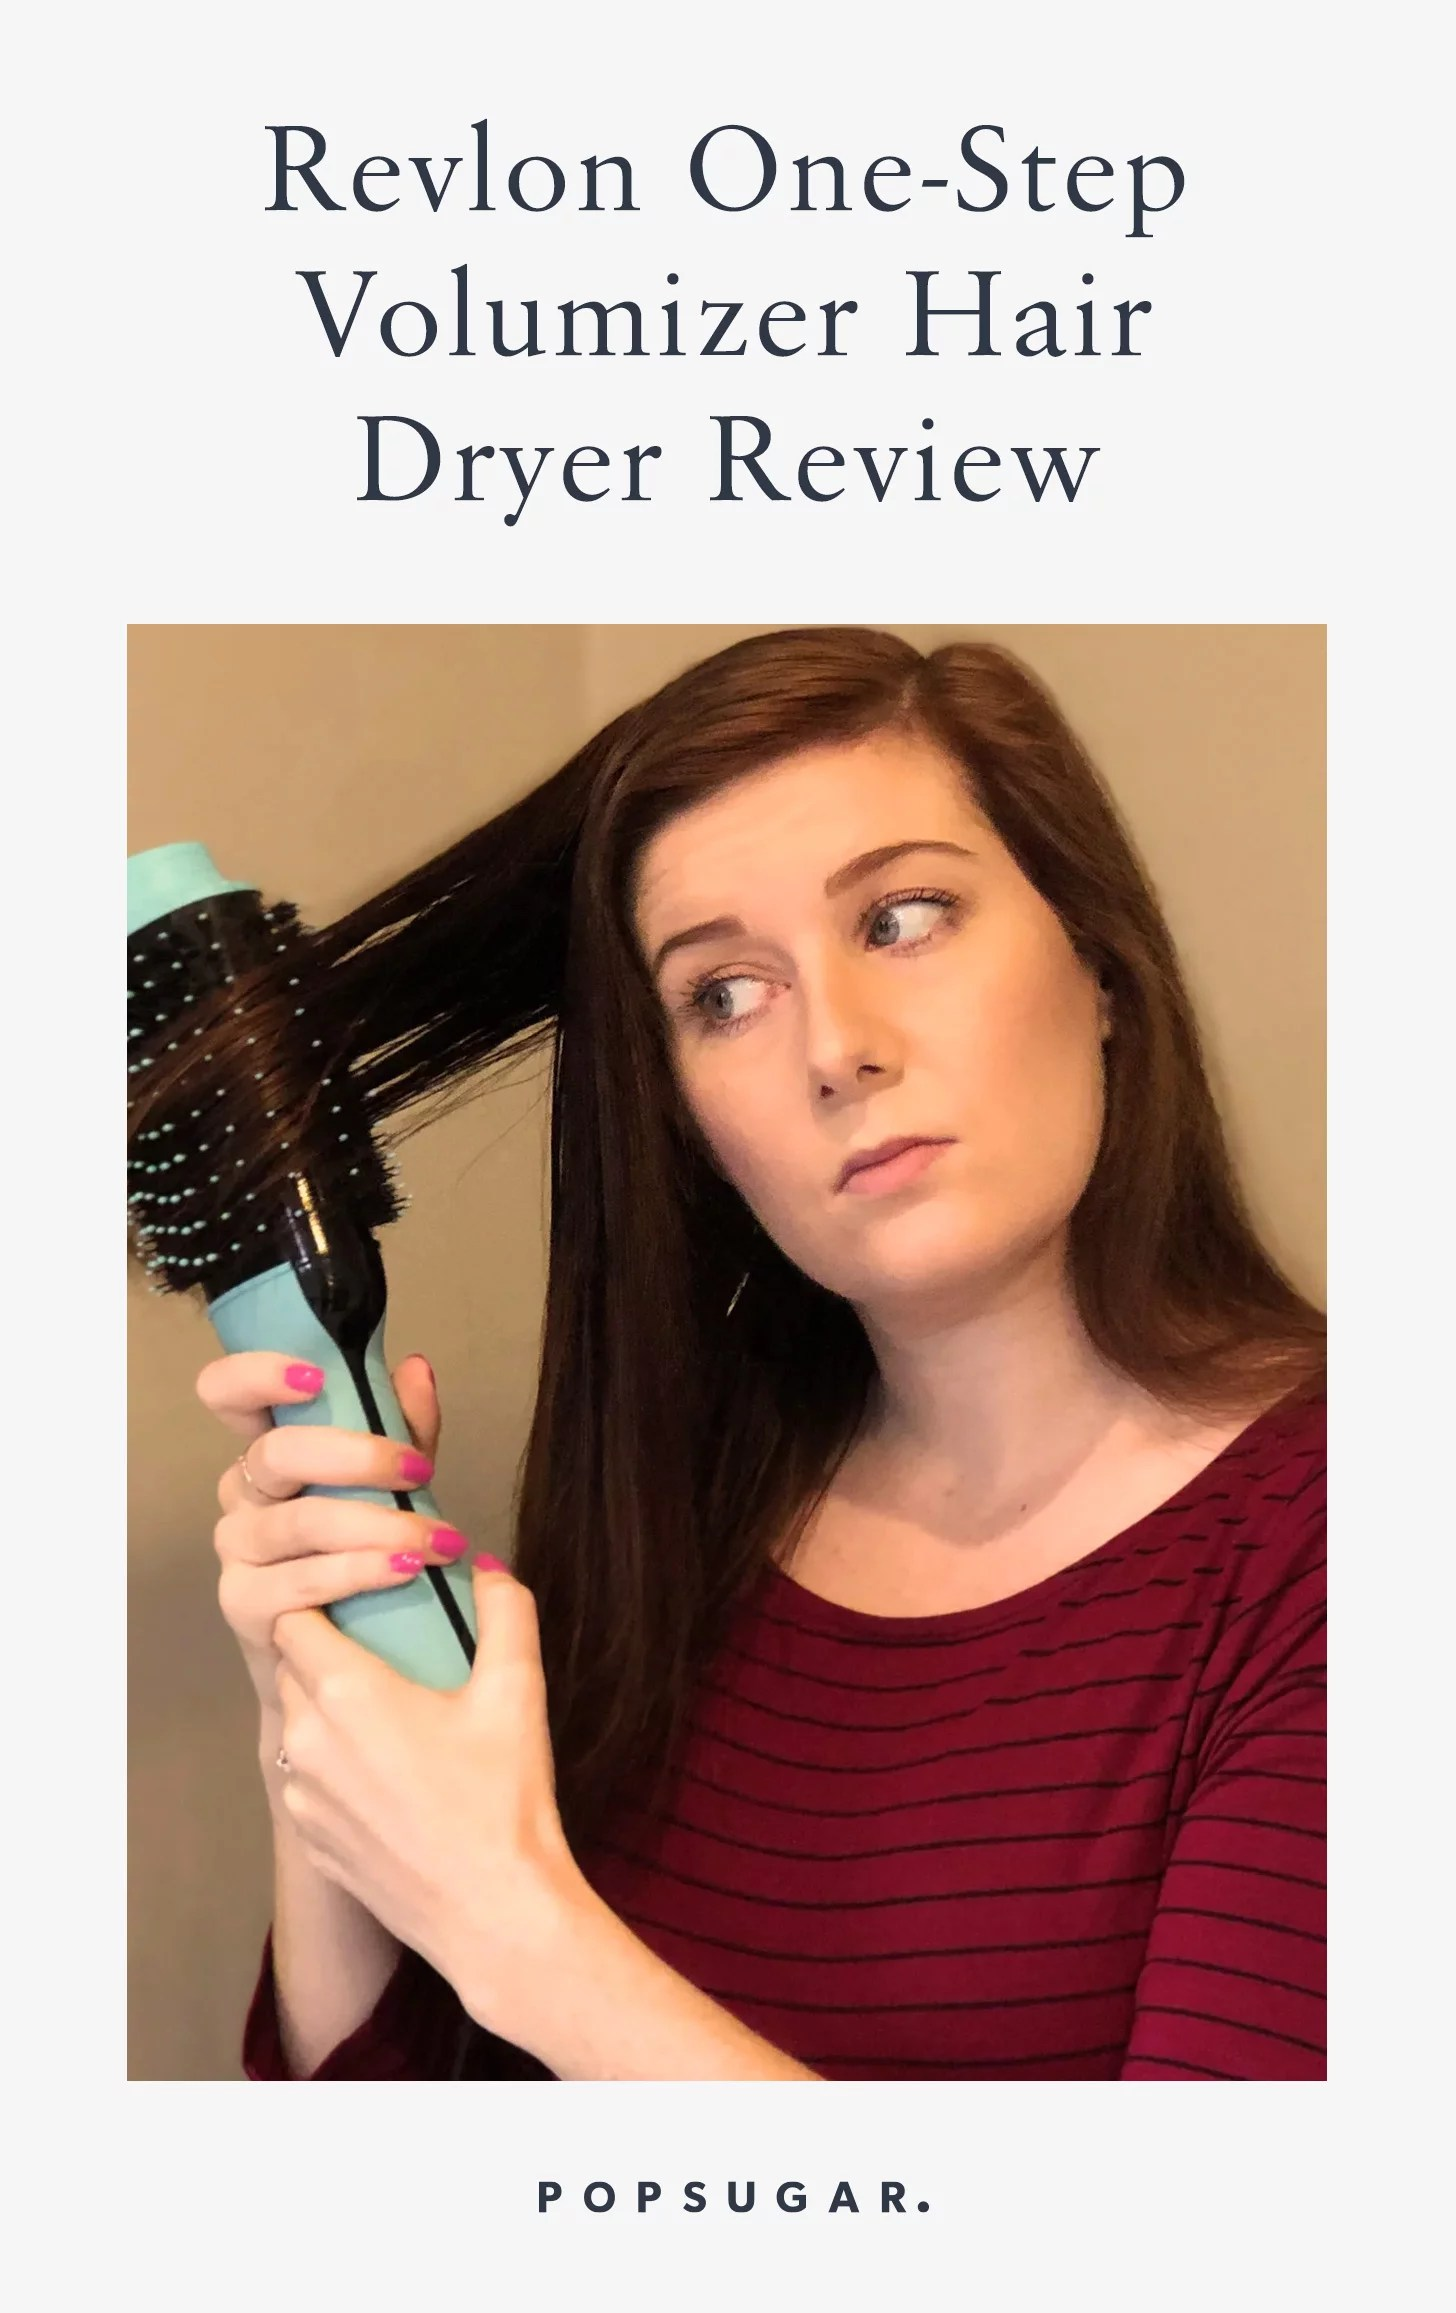 This $58 Tool Has Me About to Throw All My Hairbrushes in the Fireplace